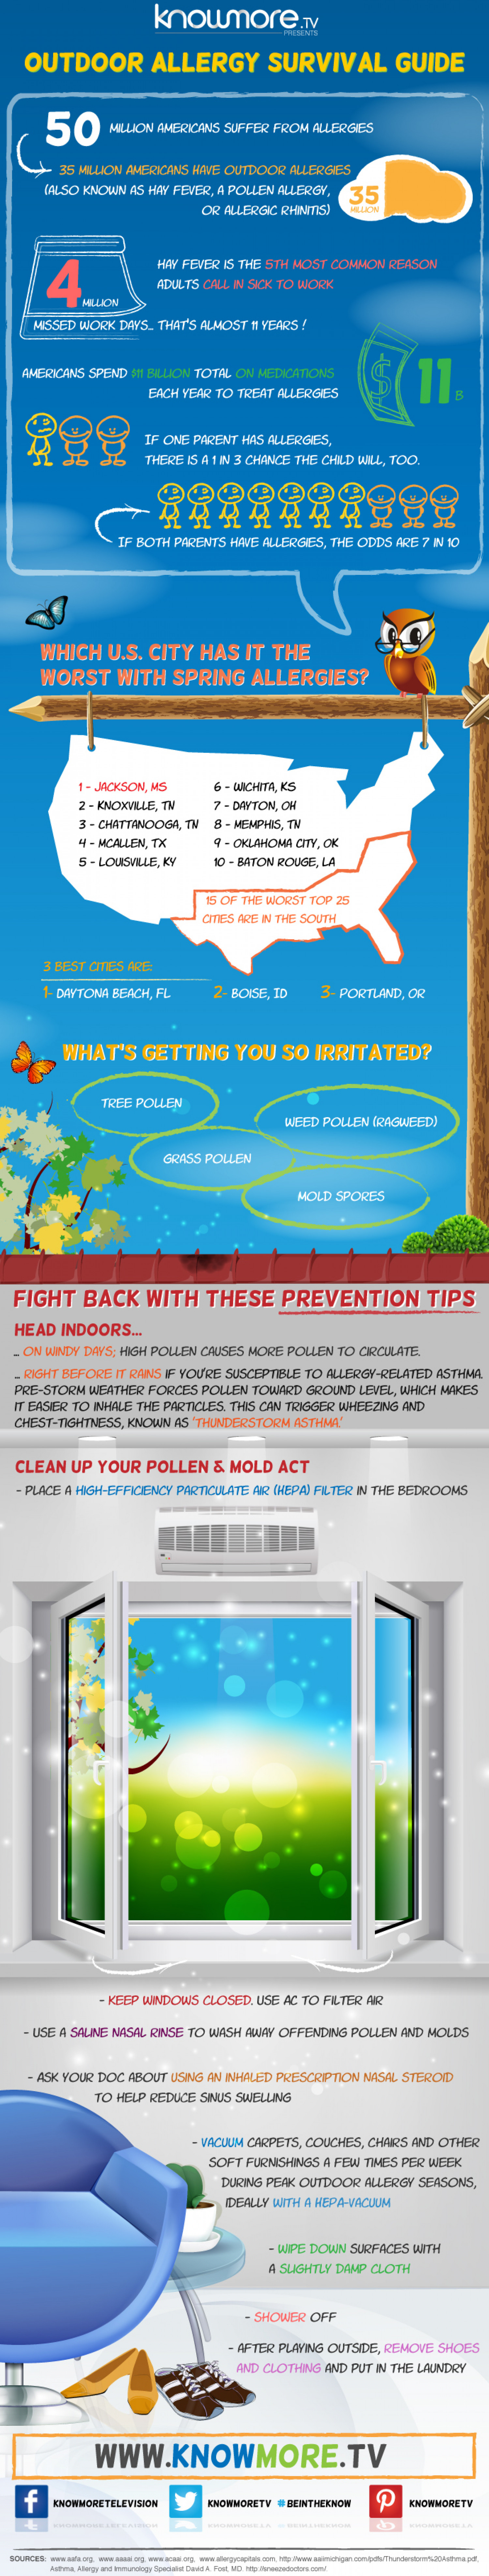 Outdoor Allergy Survival Guide. Infographic